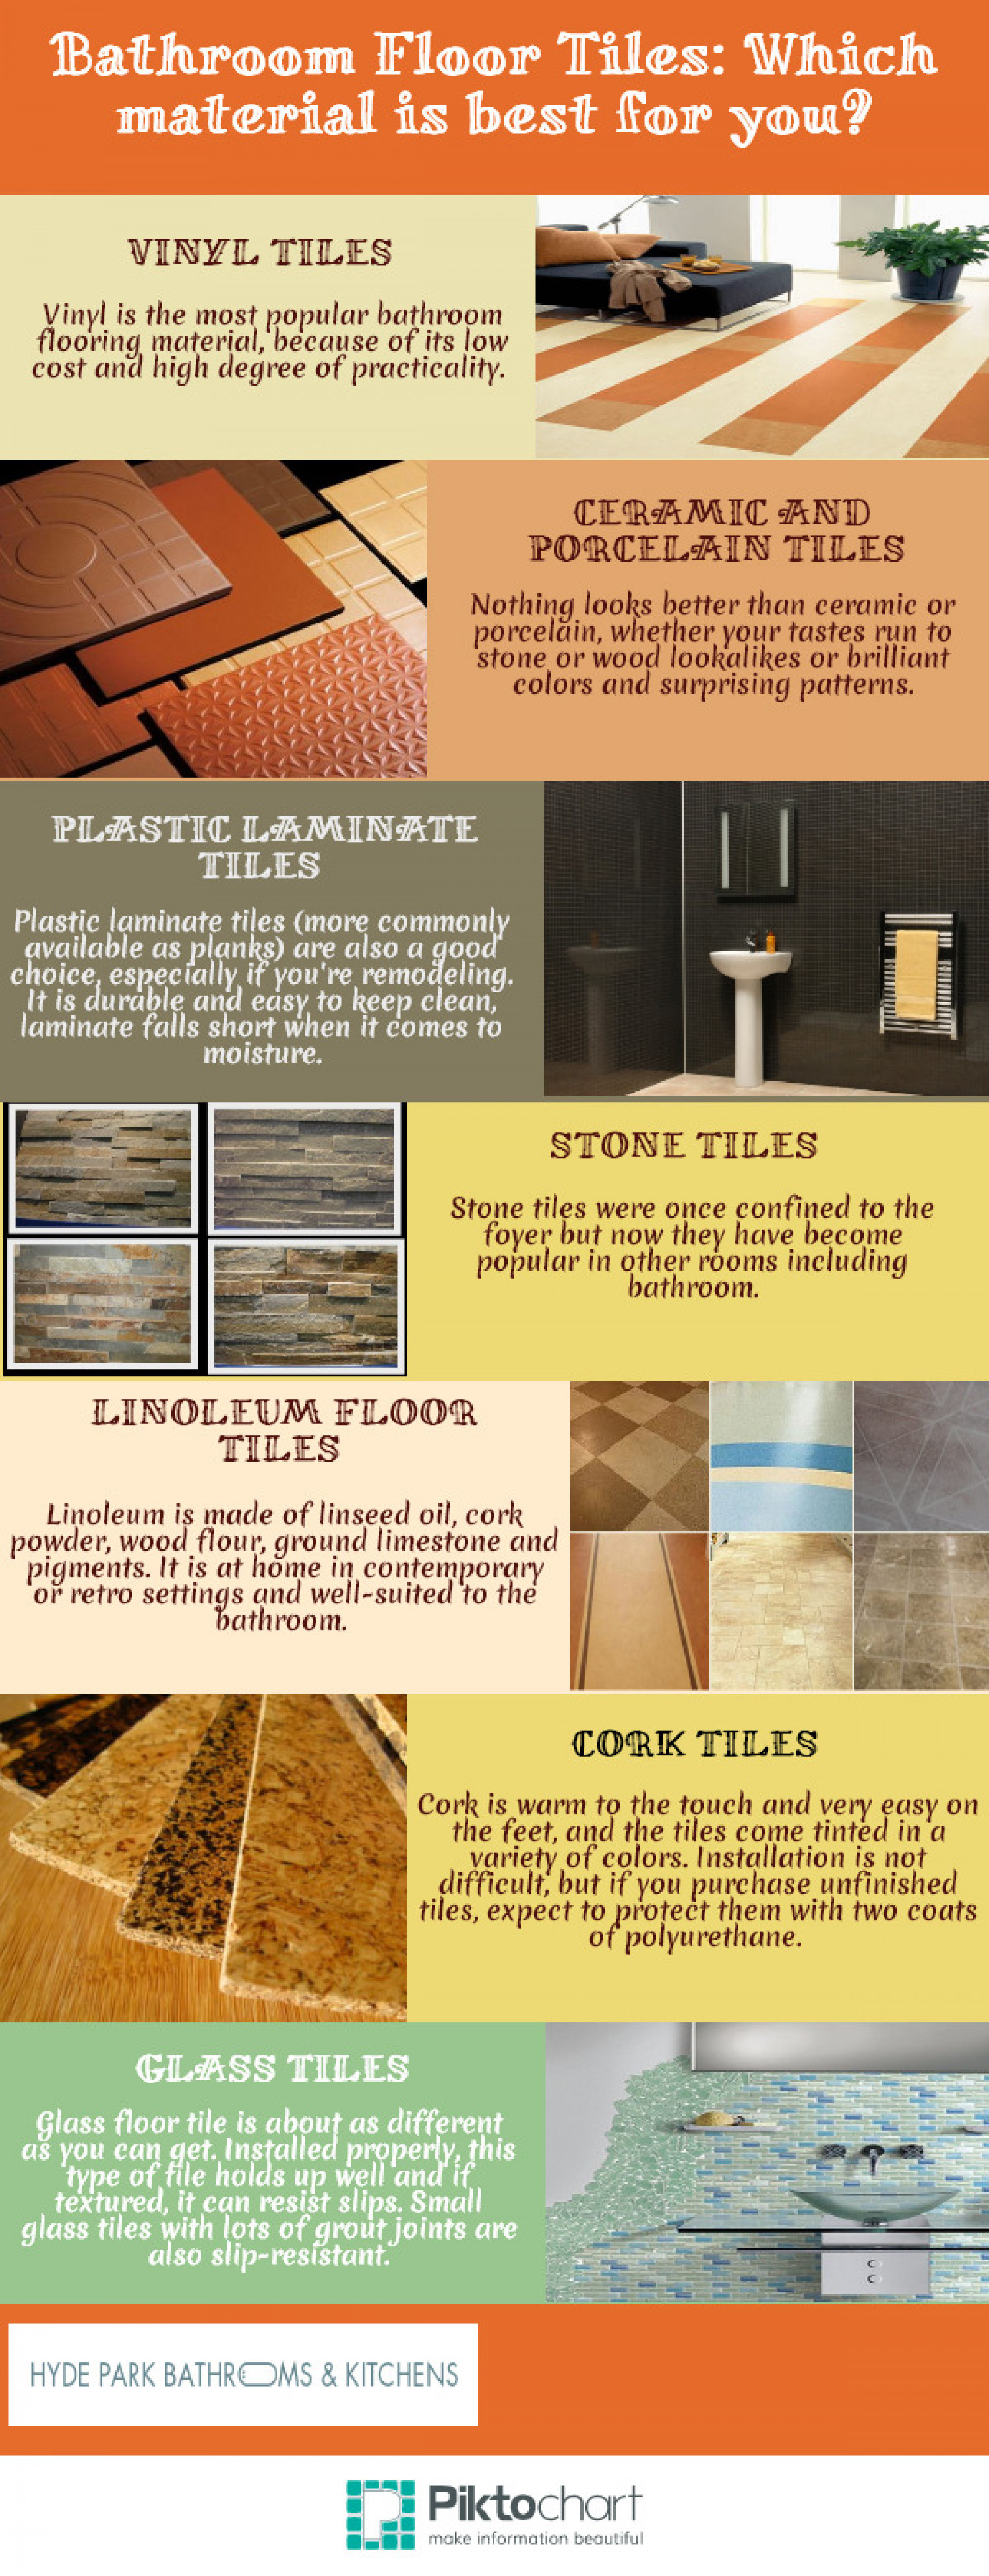 Bathroom Floor Tiles Which Material Is Best For You Infographic